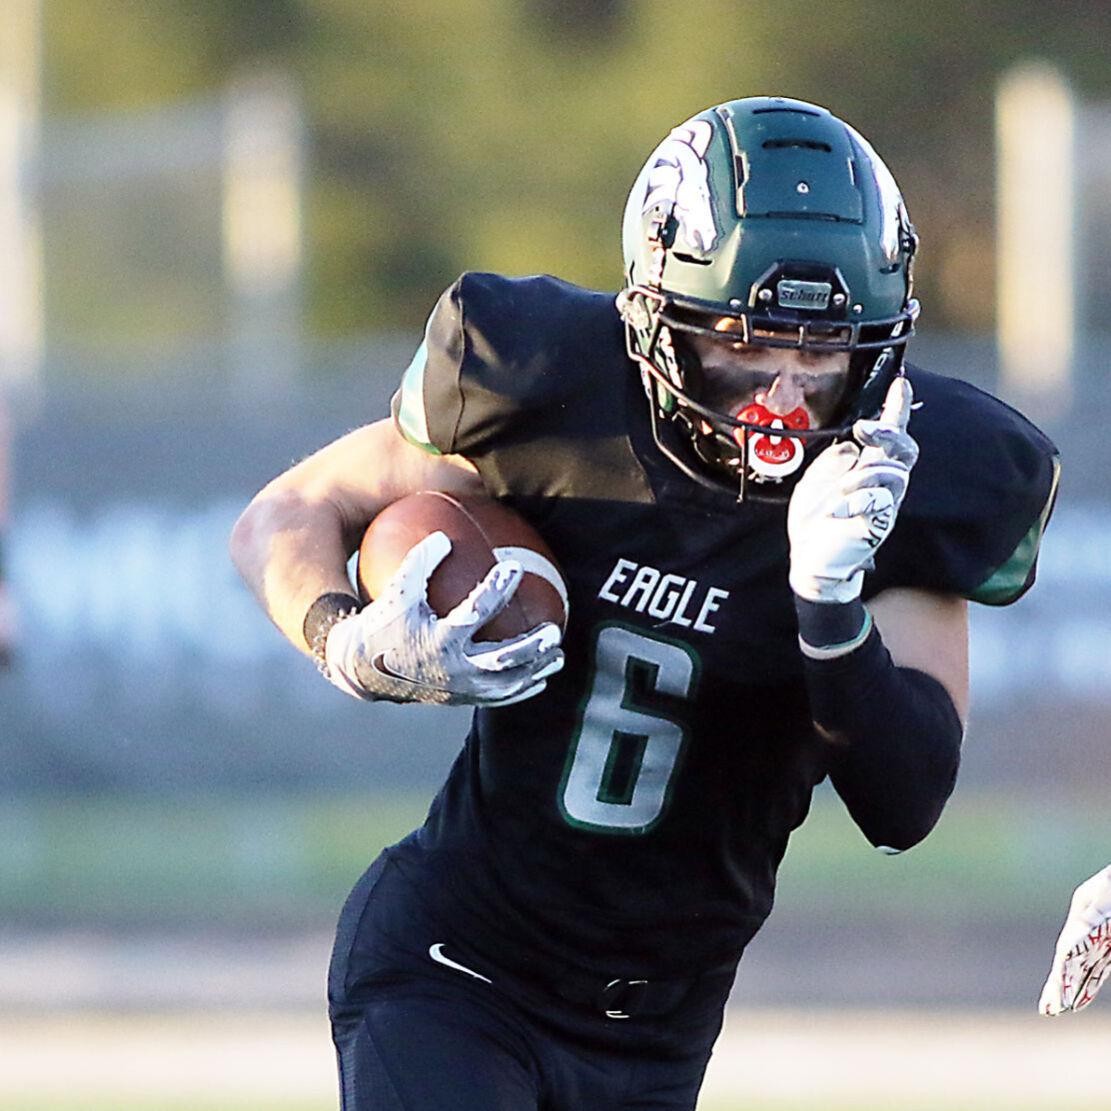 Eagle overcomes 20-point fourth-quarter deficit to beat Meridian 24-23